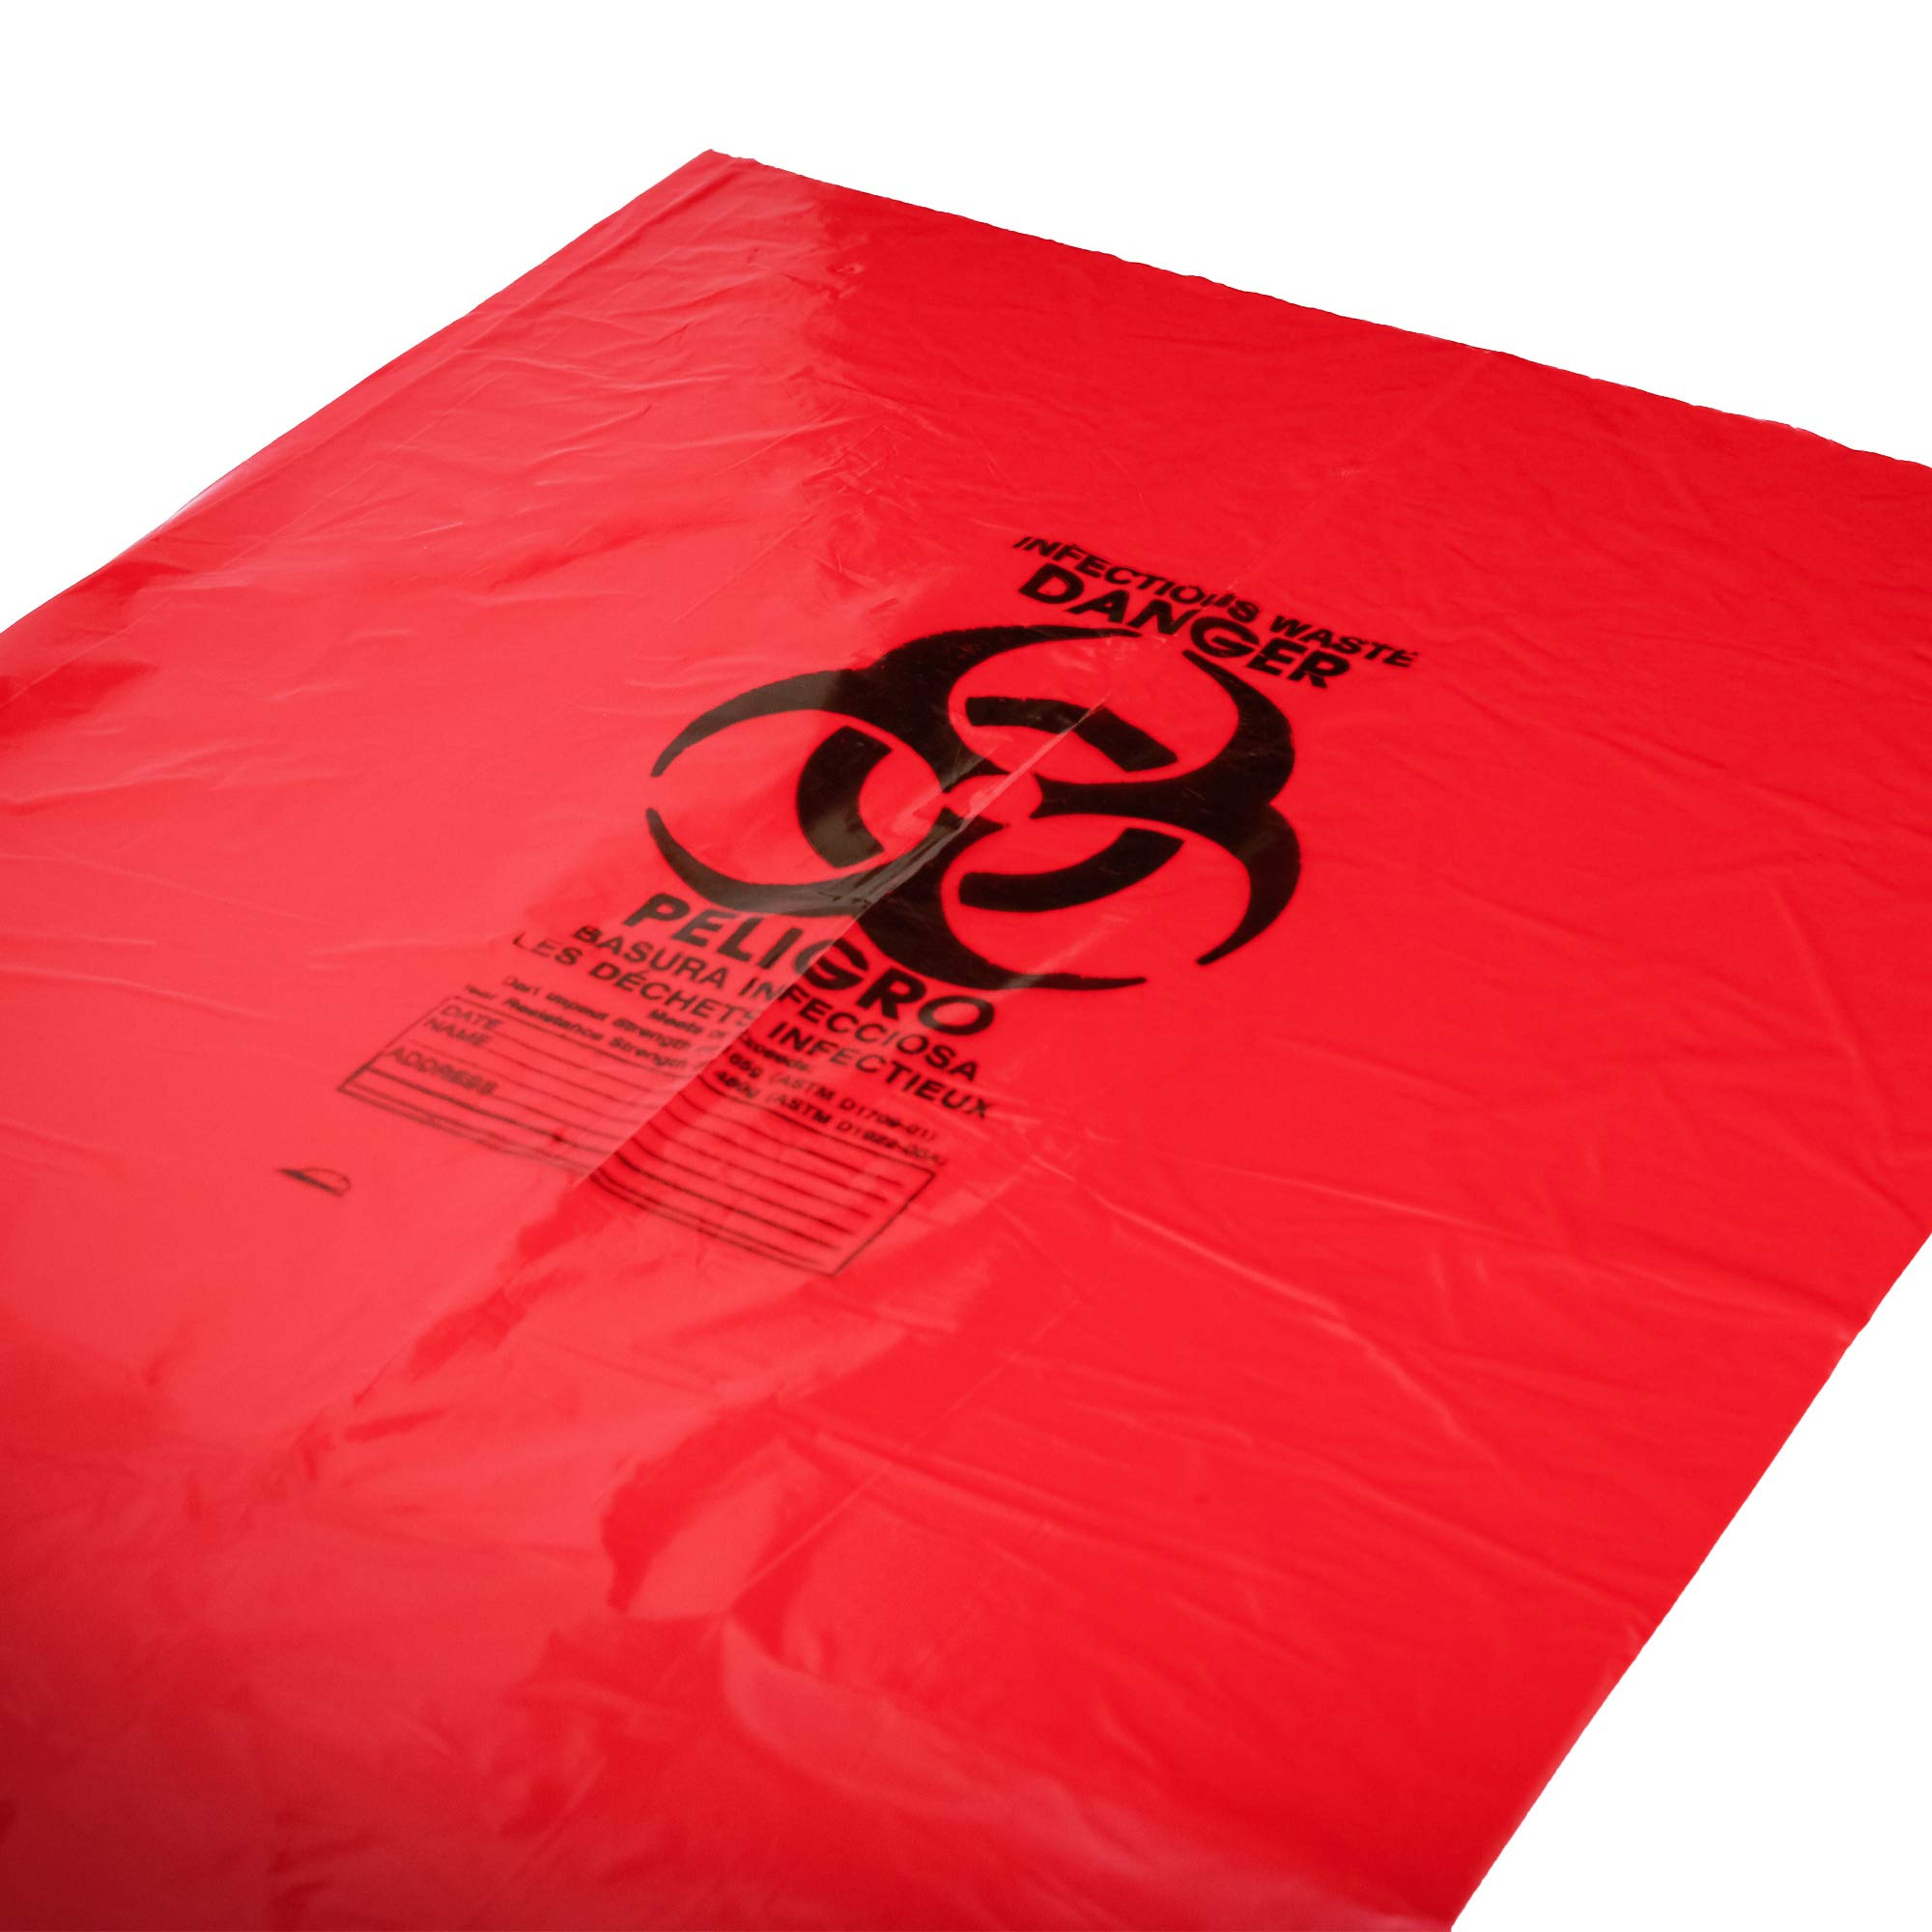 Red Biohazard Bags (40-45 Gallon Pack 100) by USPolyPack